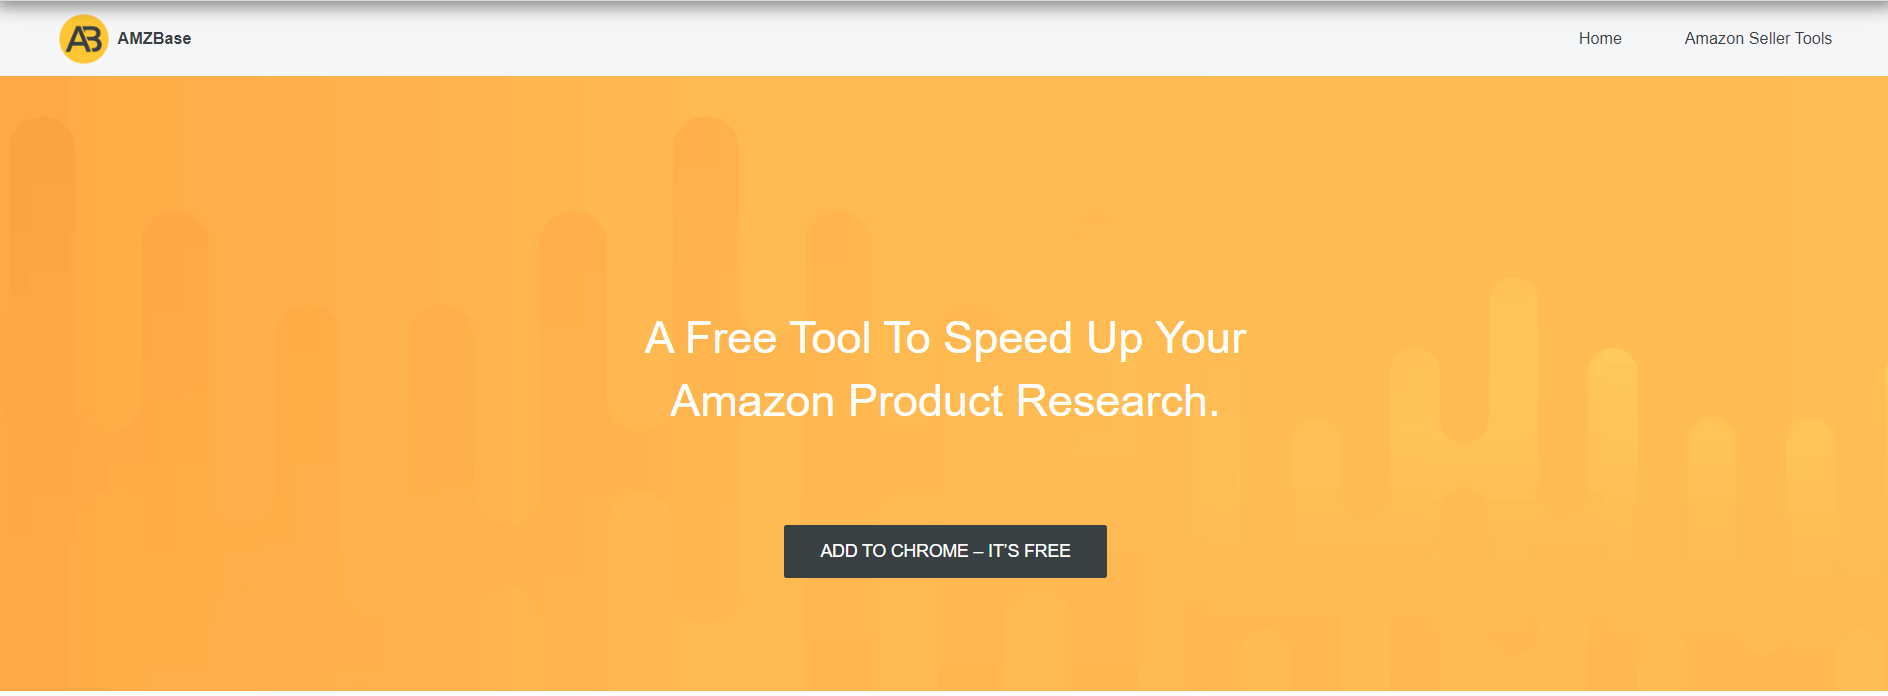 AMZBase – Free Amazon Product Research Assisting Tool